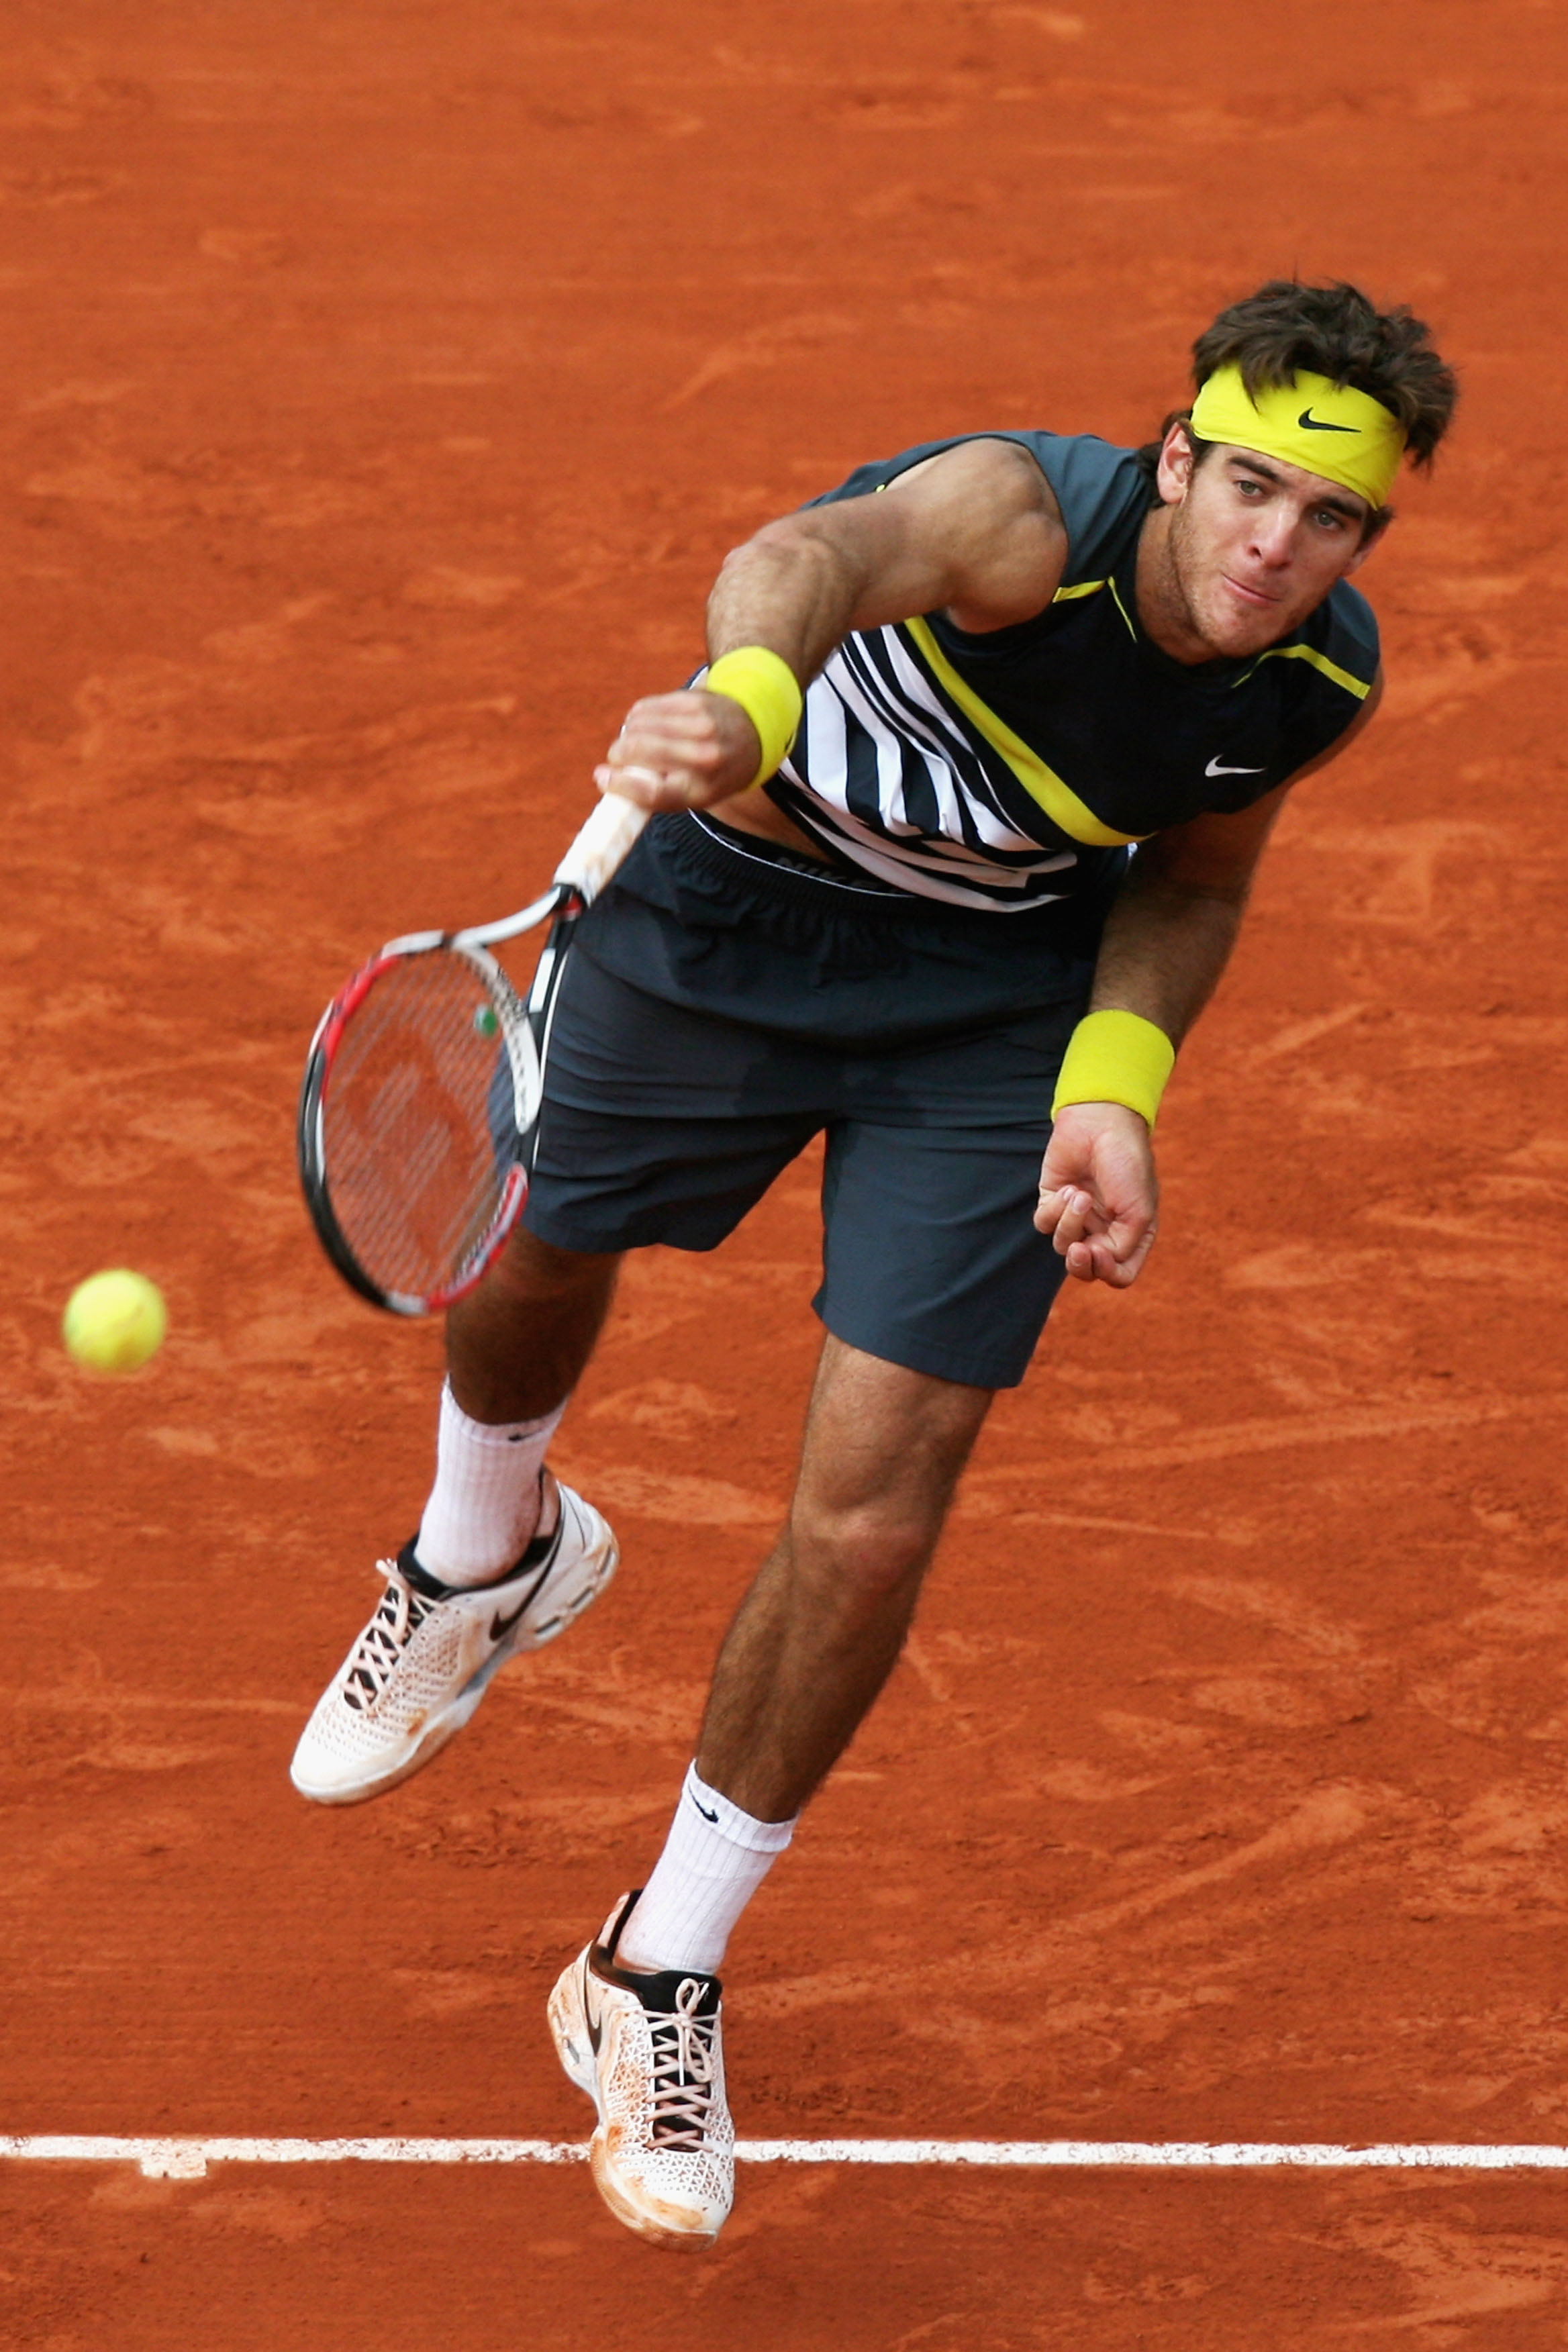 PARIS - JUNE 03:  Juan Martin Del Potro of Argentina serves during the Men's Singles Quarter Final match against Tommy Robredo of Spain on day eleven of the French Open at Roland Garros on June 3, 2009 in Paris, France.  (Photo by Matthew Stockman/Getty I